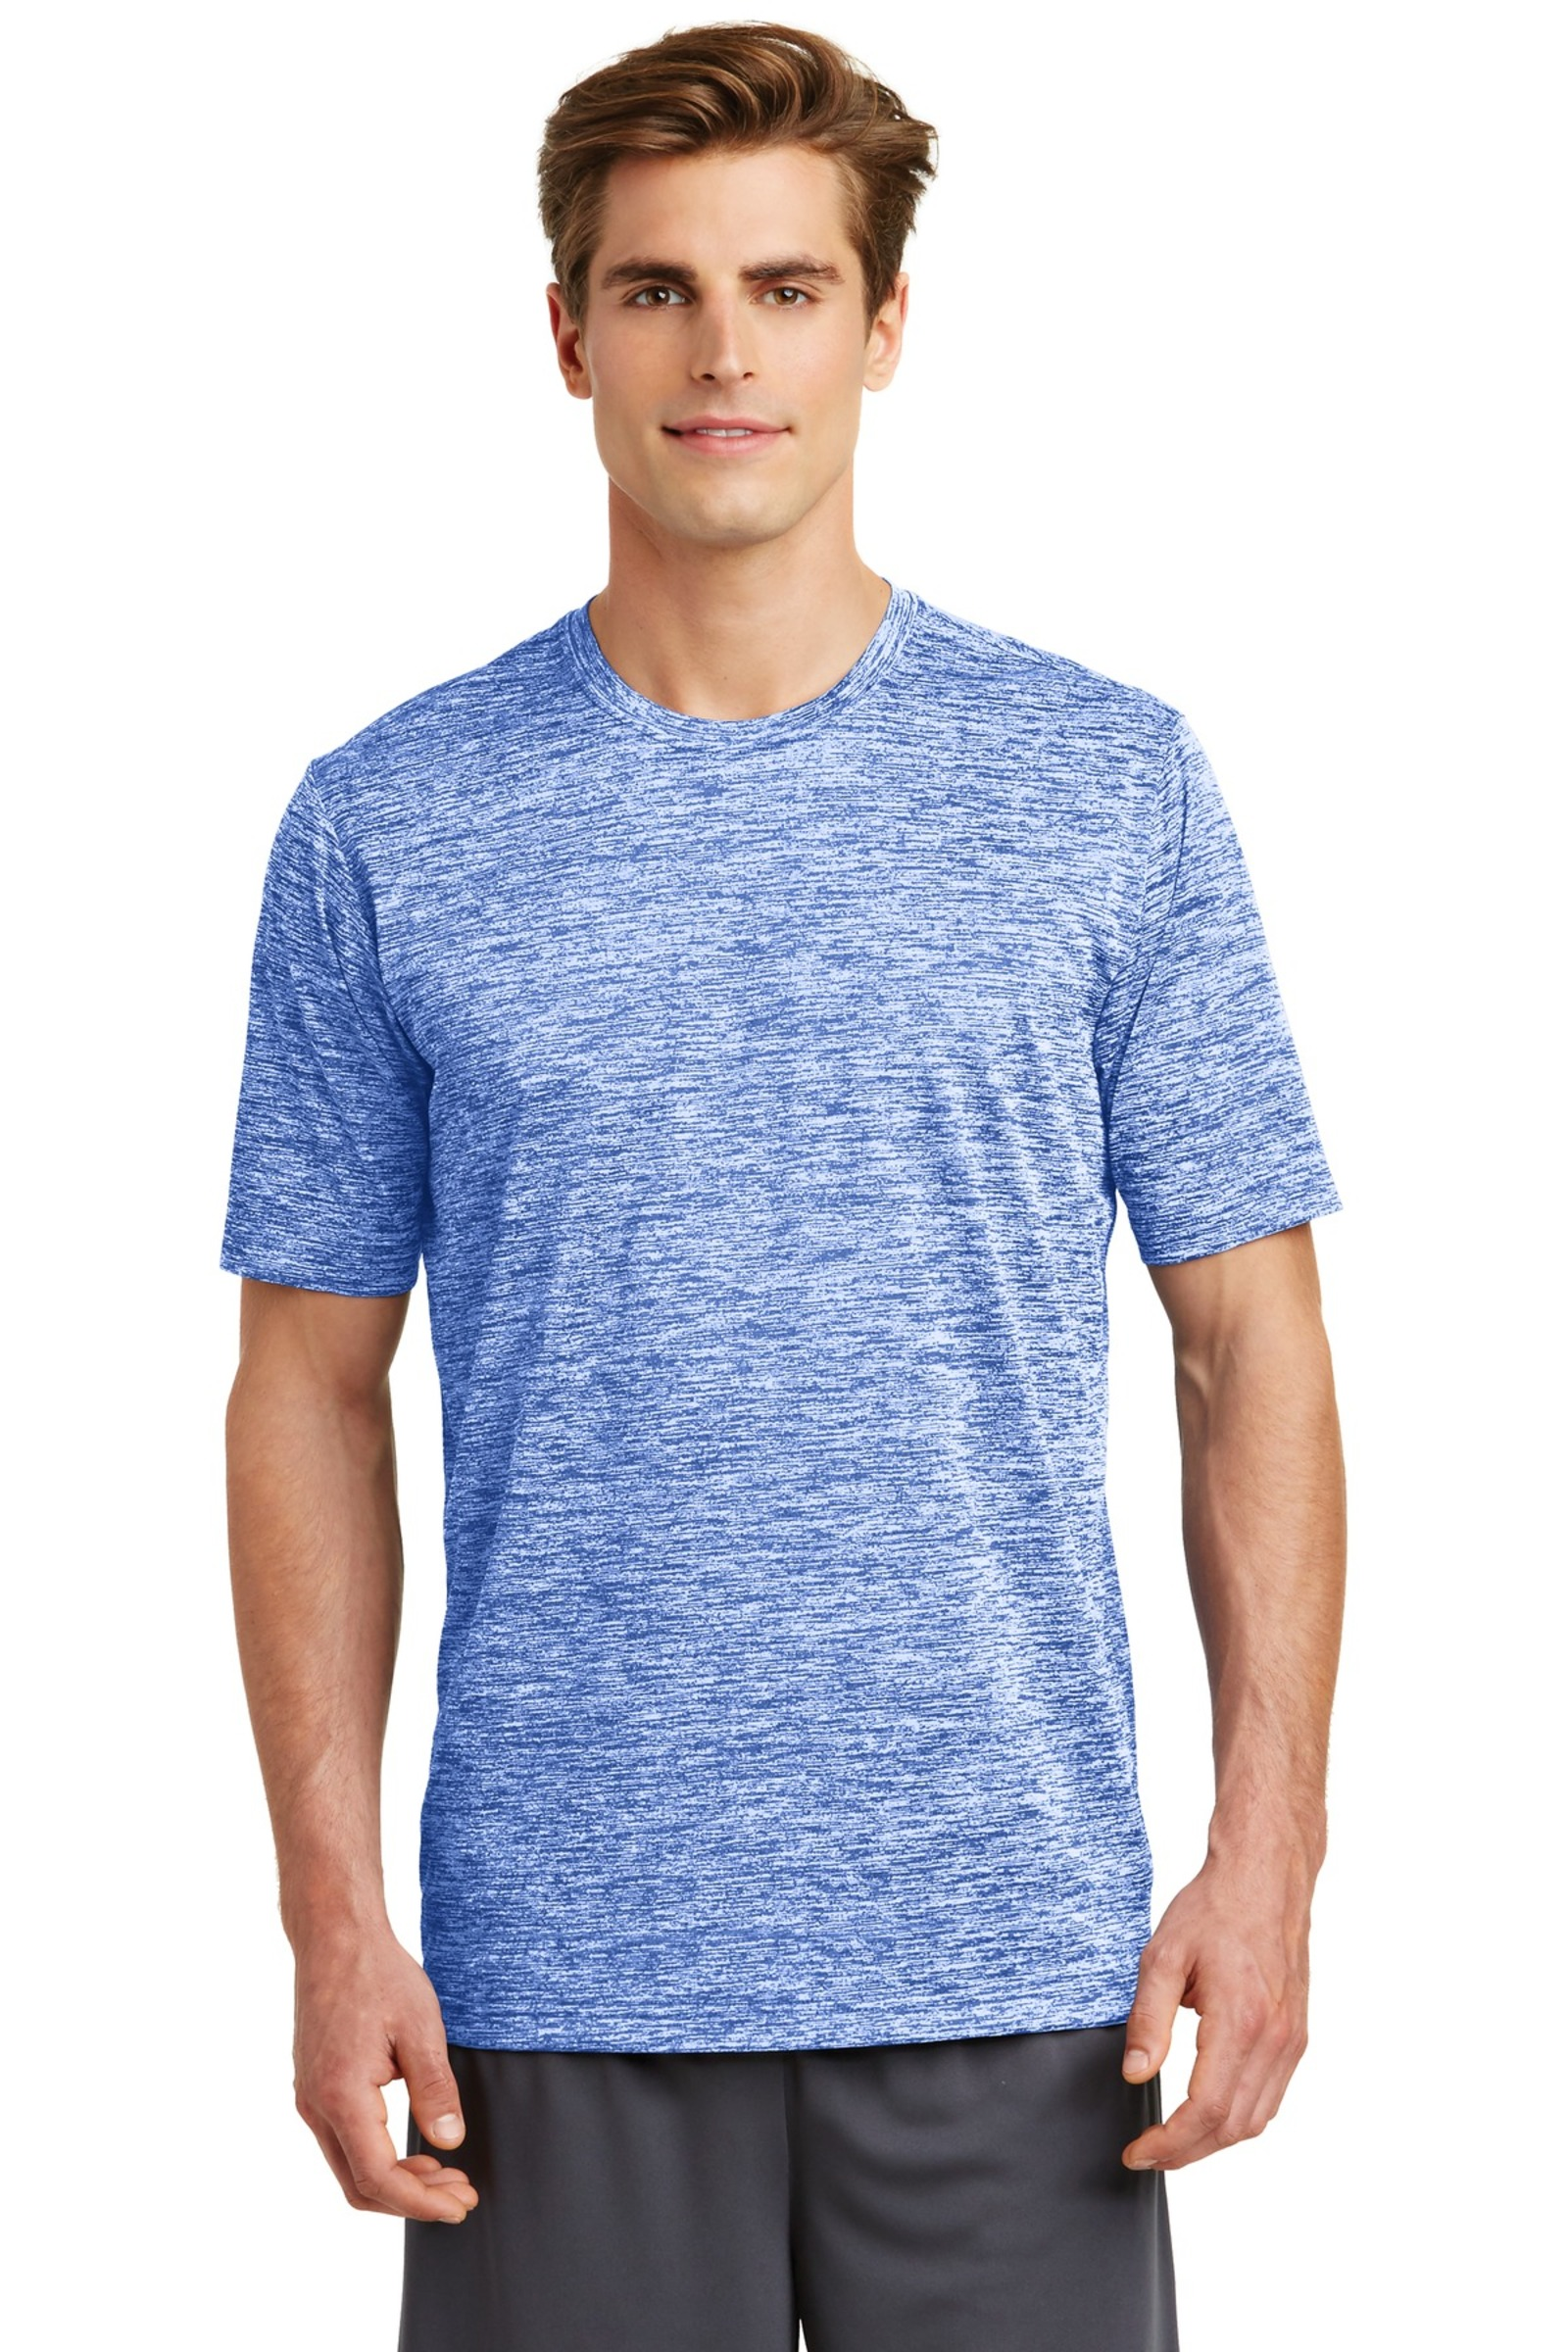 Sport-Tek Embroidered Men's PosiCharge Electric Heather Tee